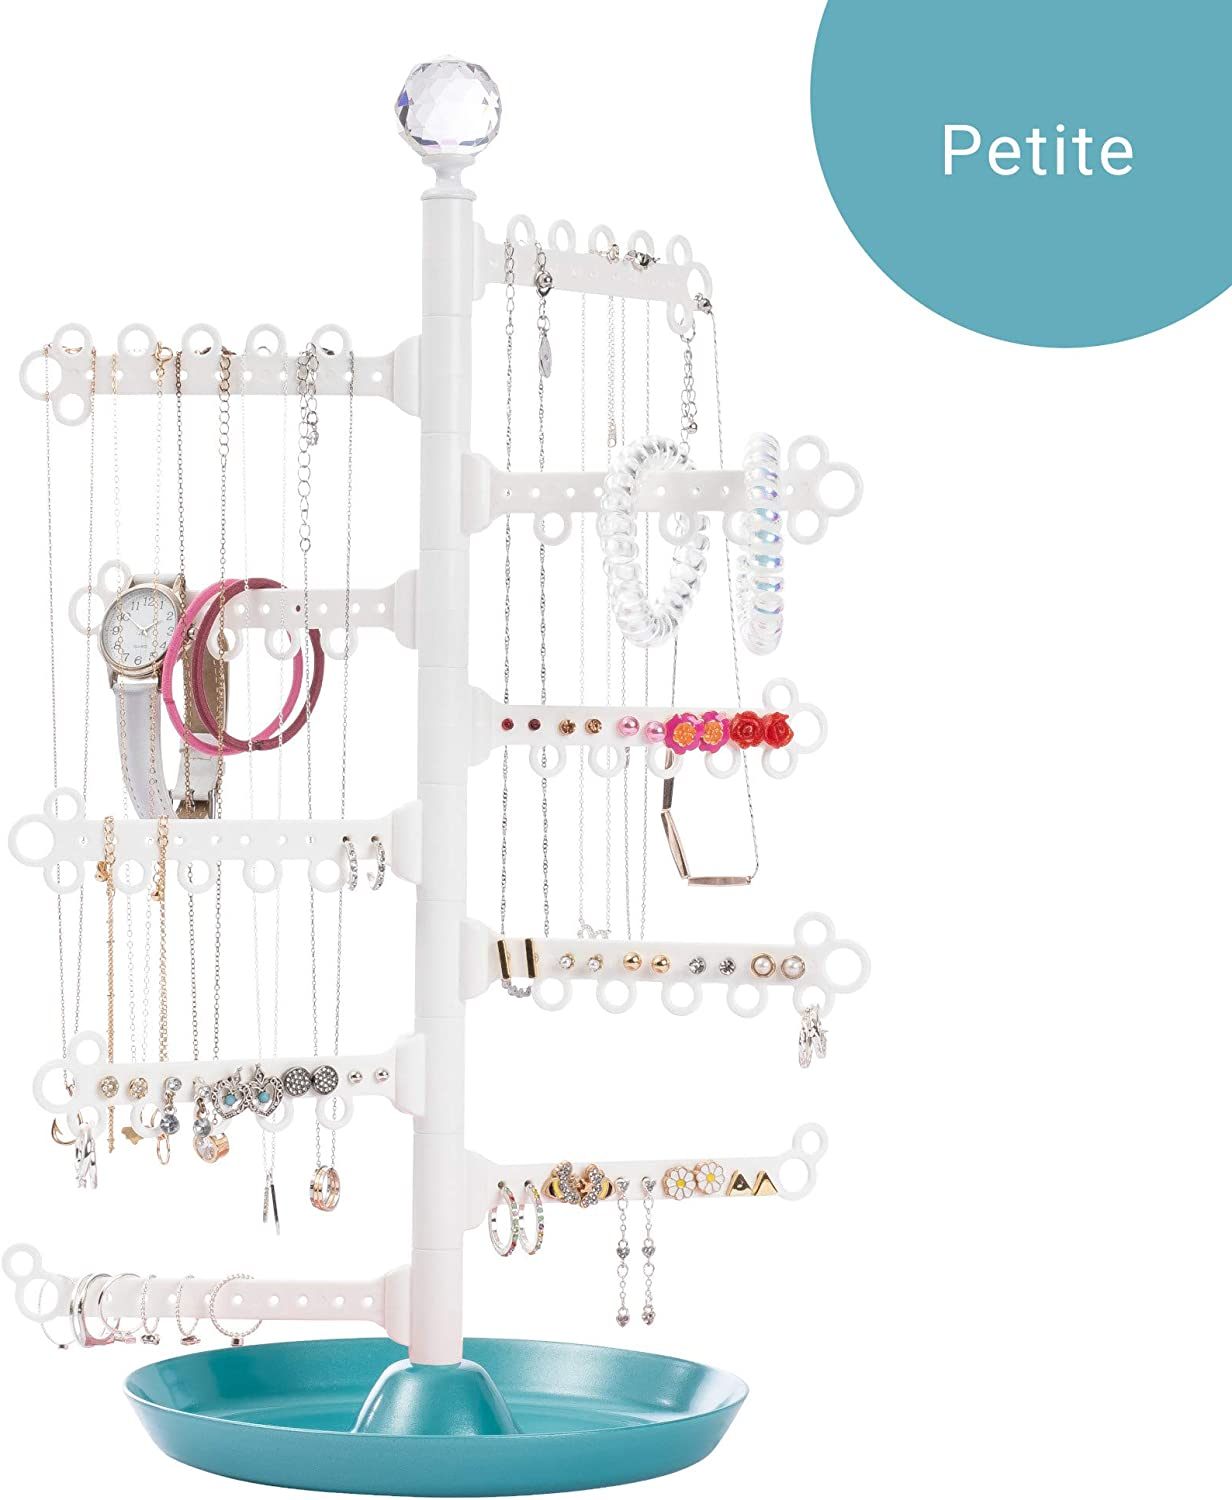 All Hung Up 10-Tier Display Everything Necklaces, Earrings 90 Pairs , Rings, Bracelets Jewelry Organizer Holder Stand Tower Tree with Dish Tray Limited Petite Edition Teal White